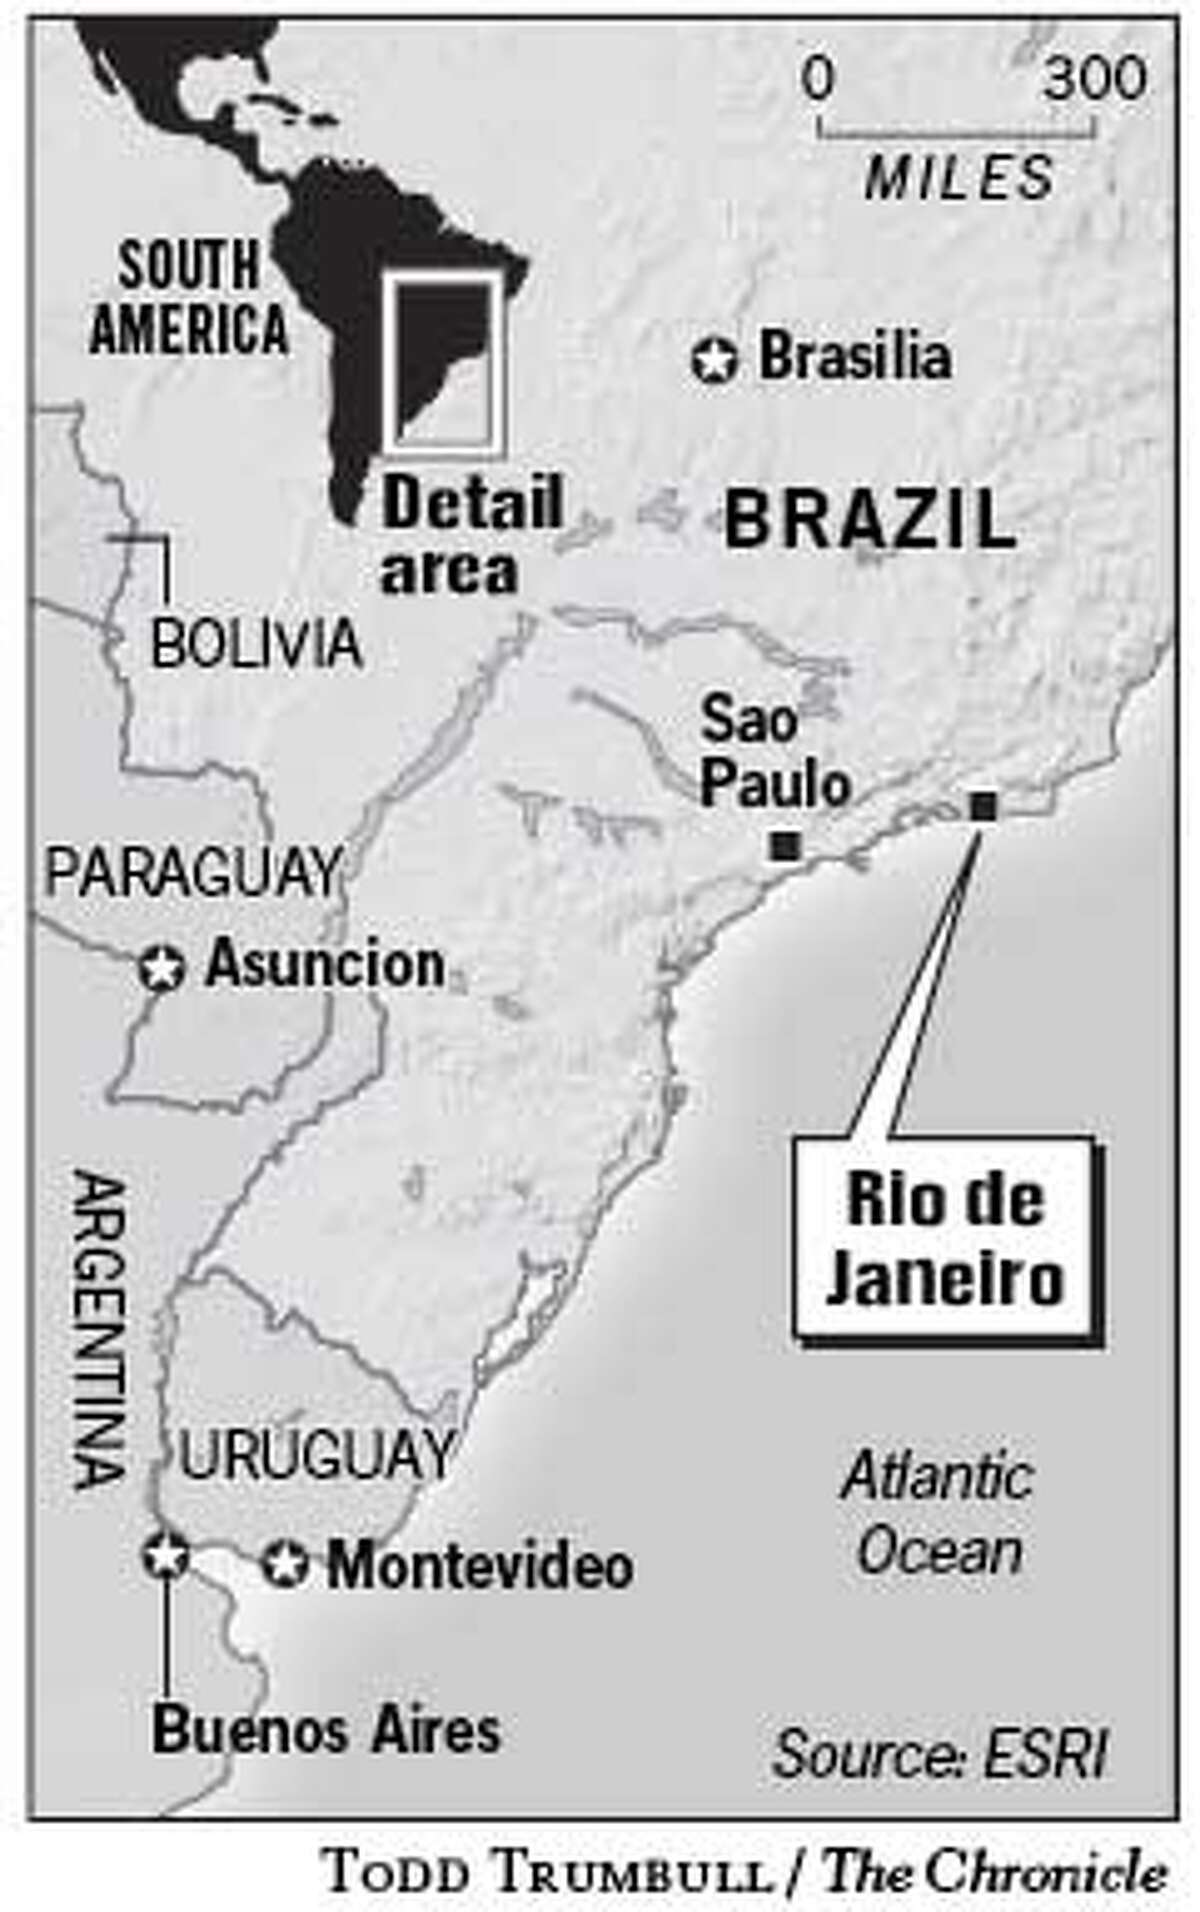 Rio de Janeiro. Chronicle graphic by Todd Trumbull